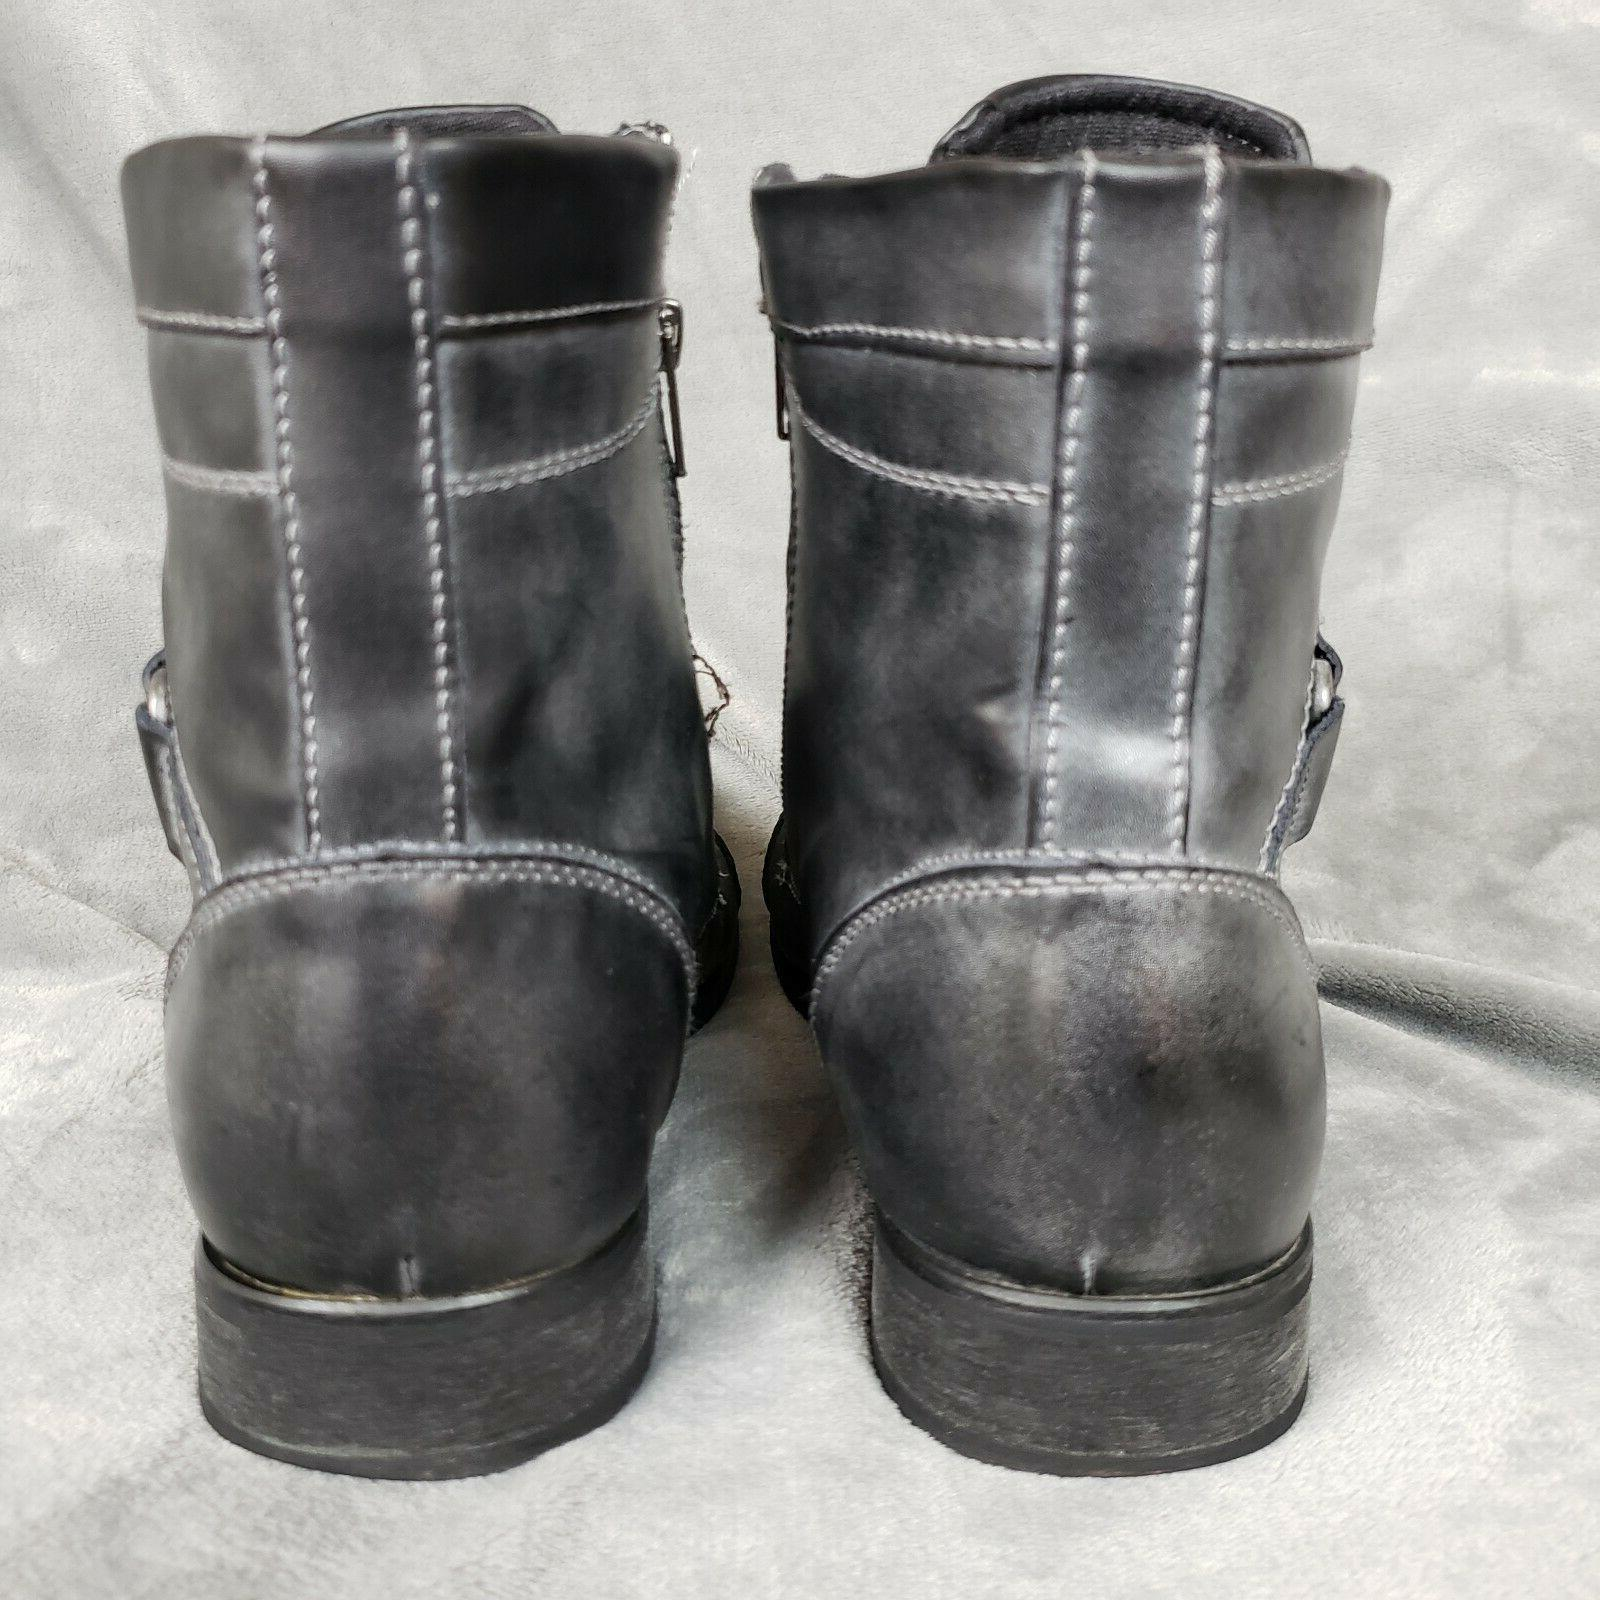 BED STU Rustic Leather Boots Size 11.5